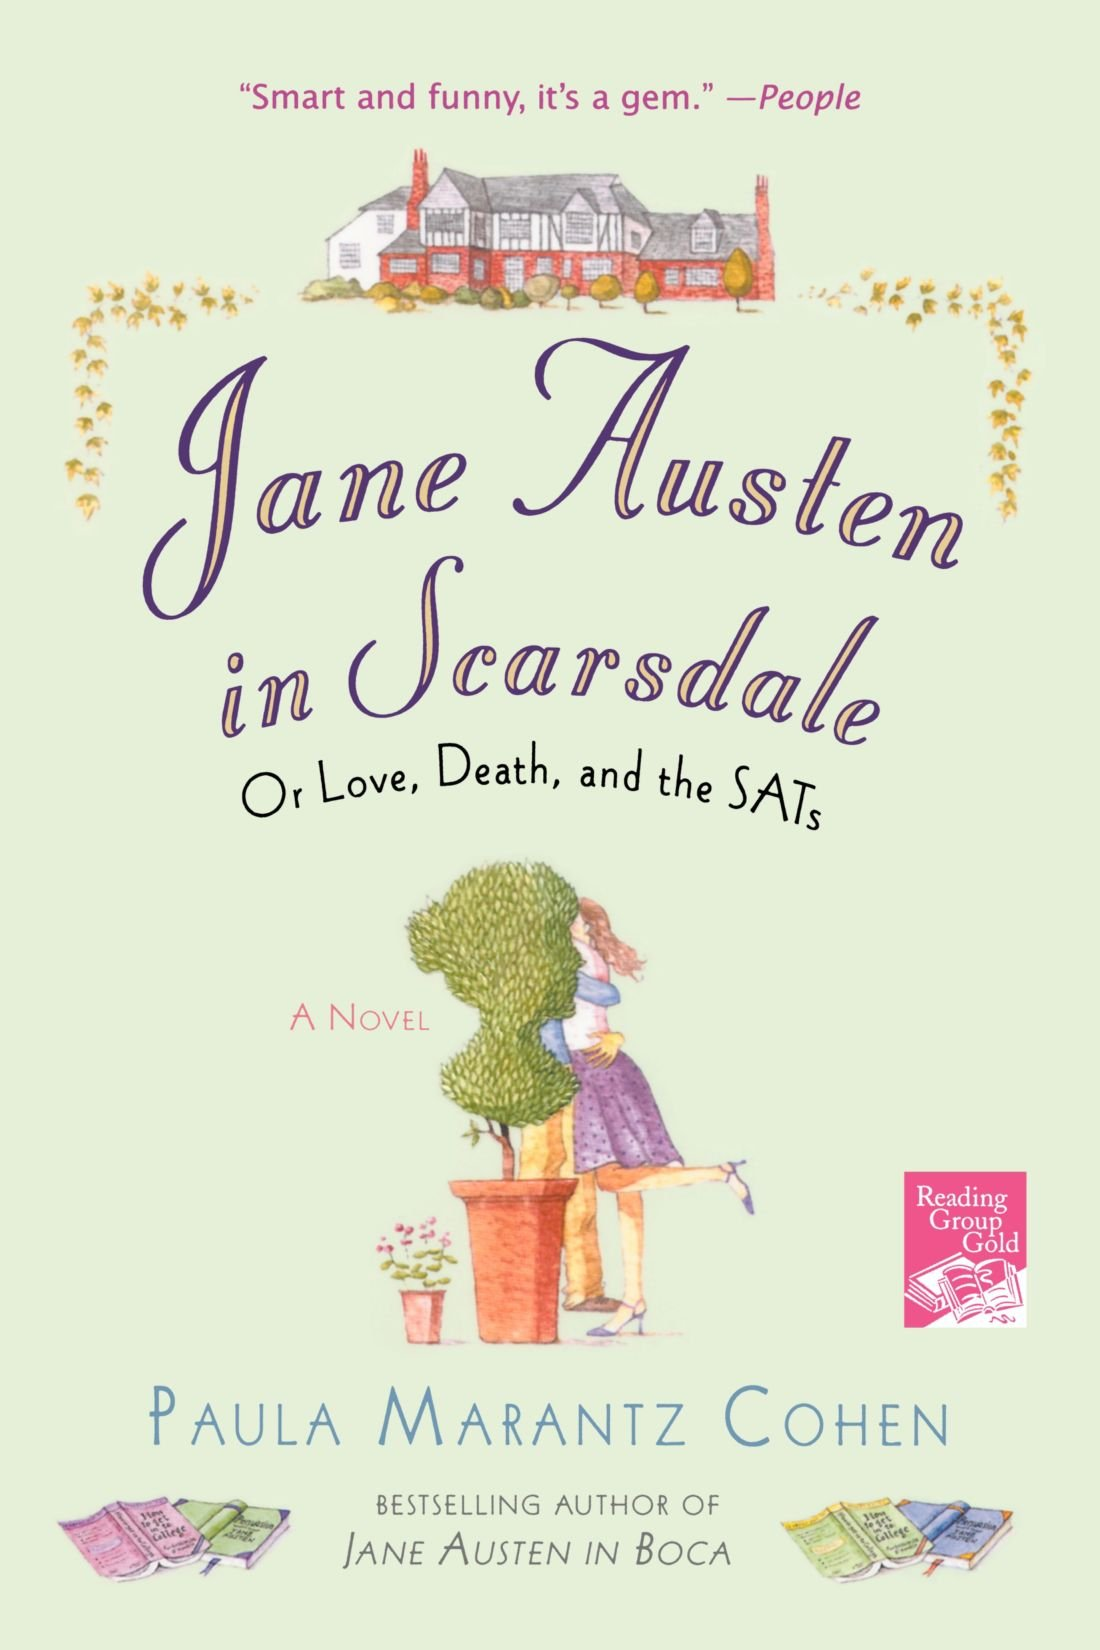 Amazon.com: Jane Austen in Scarsdale: Or Love, Death, and ...